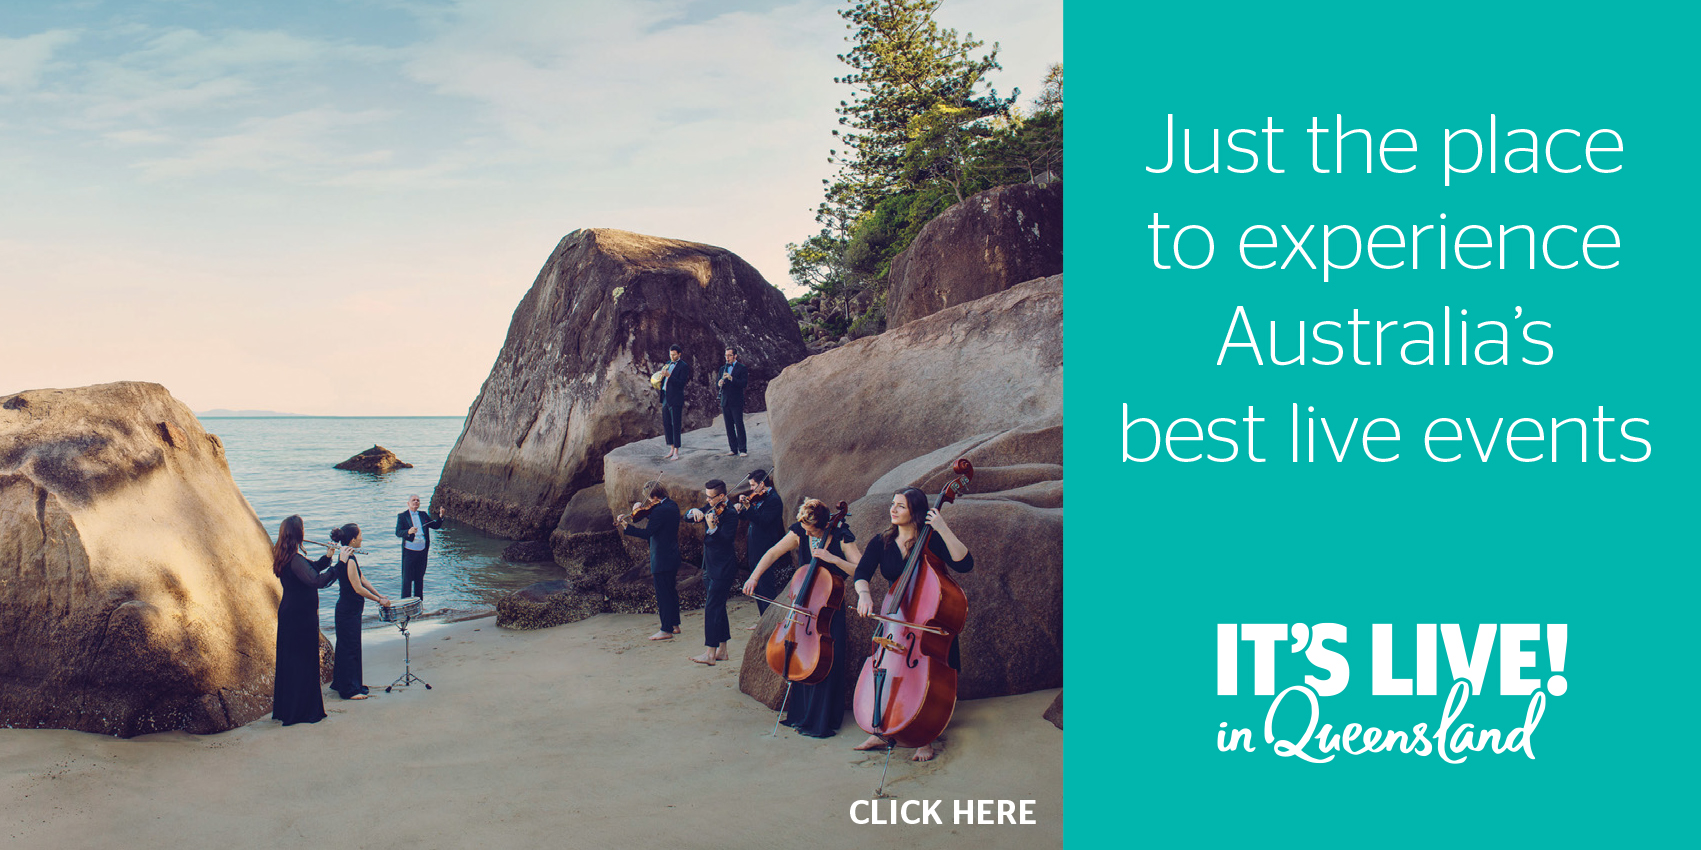 See Australia's best live events in Australia's best destinations.